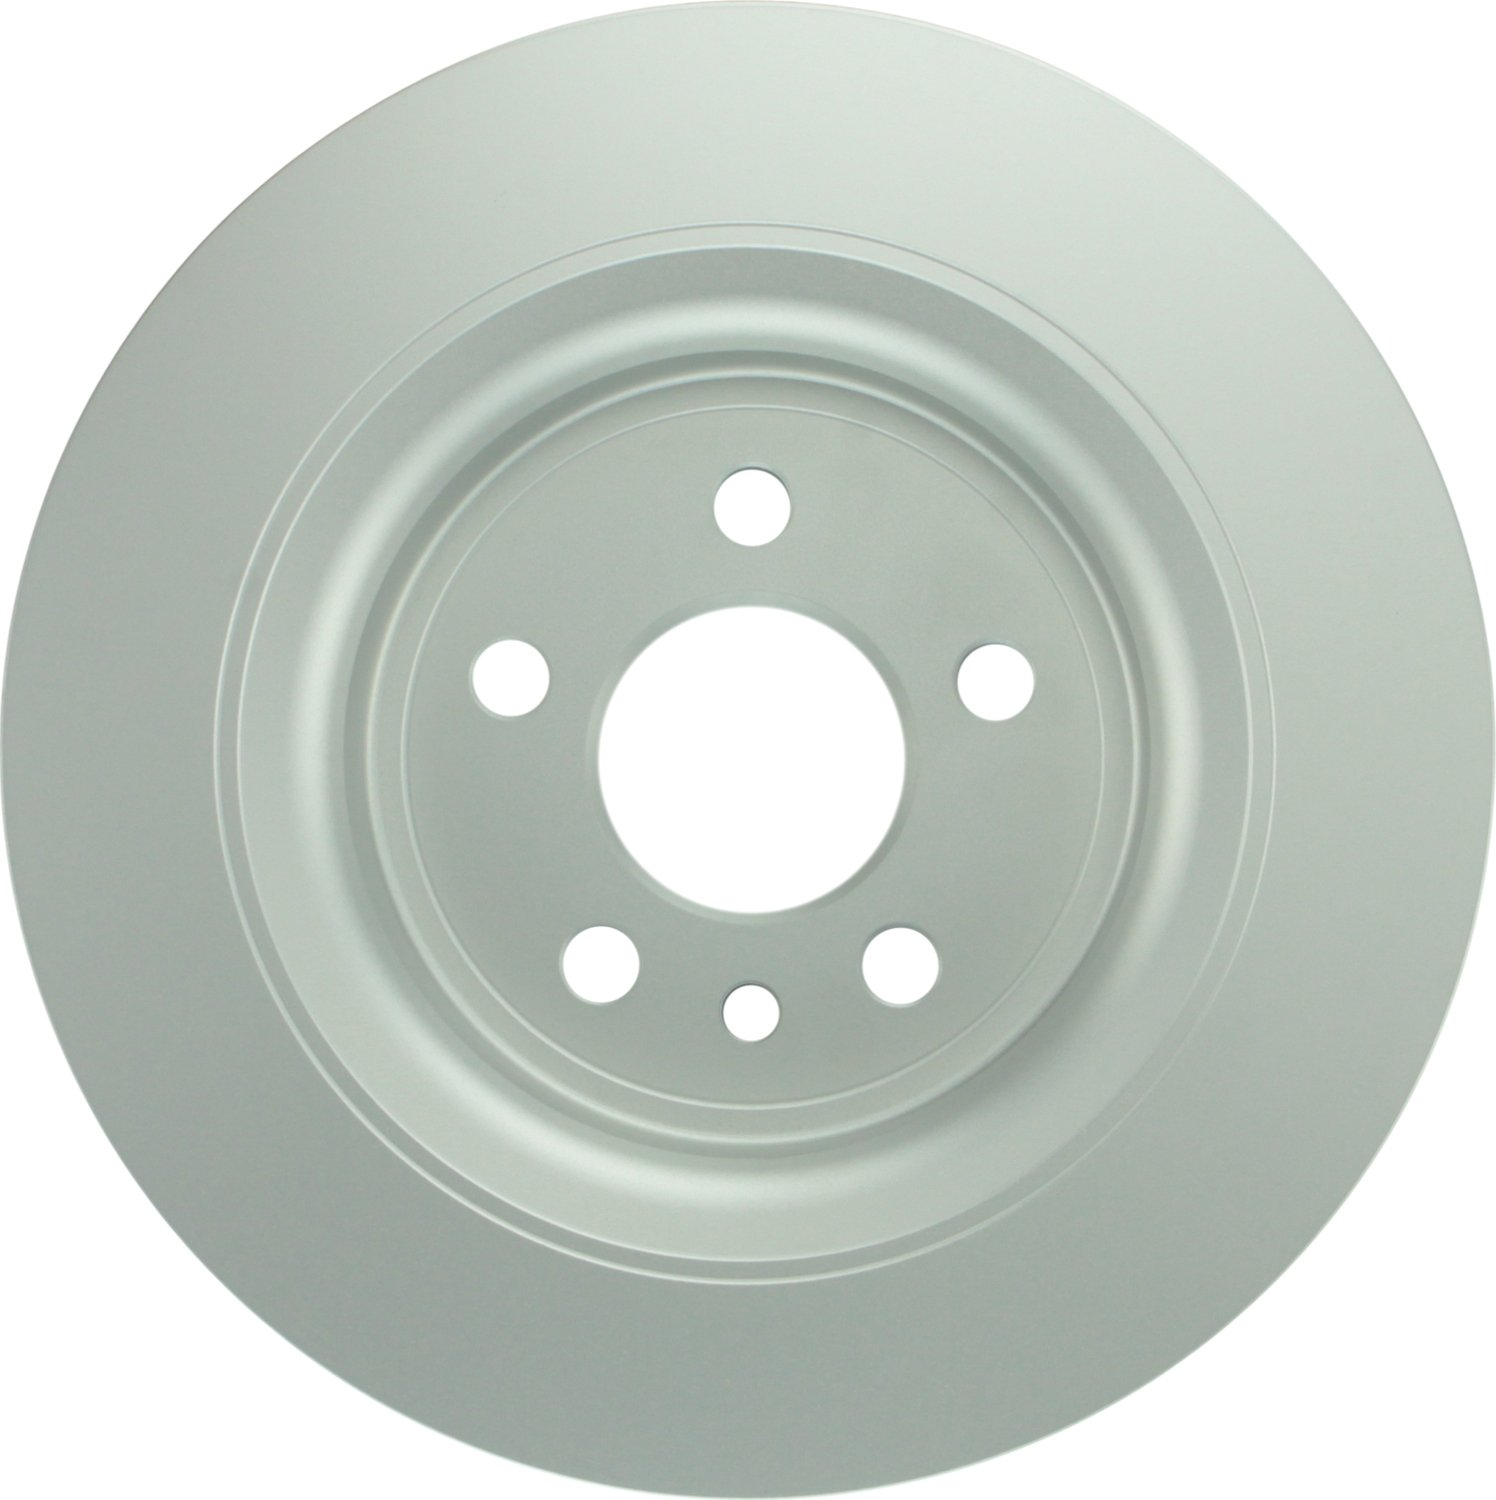 Bosch 52011386 QuietCast Premium Disc Brake Rotor, Rear